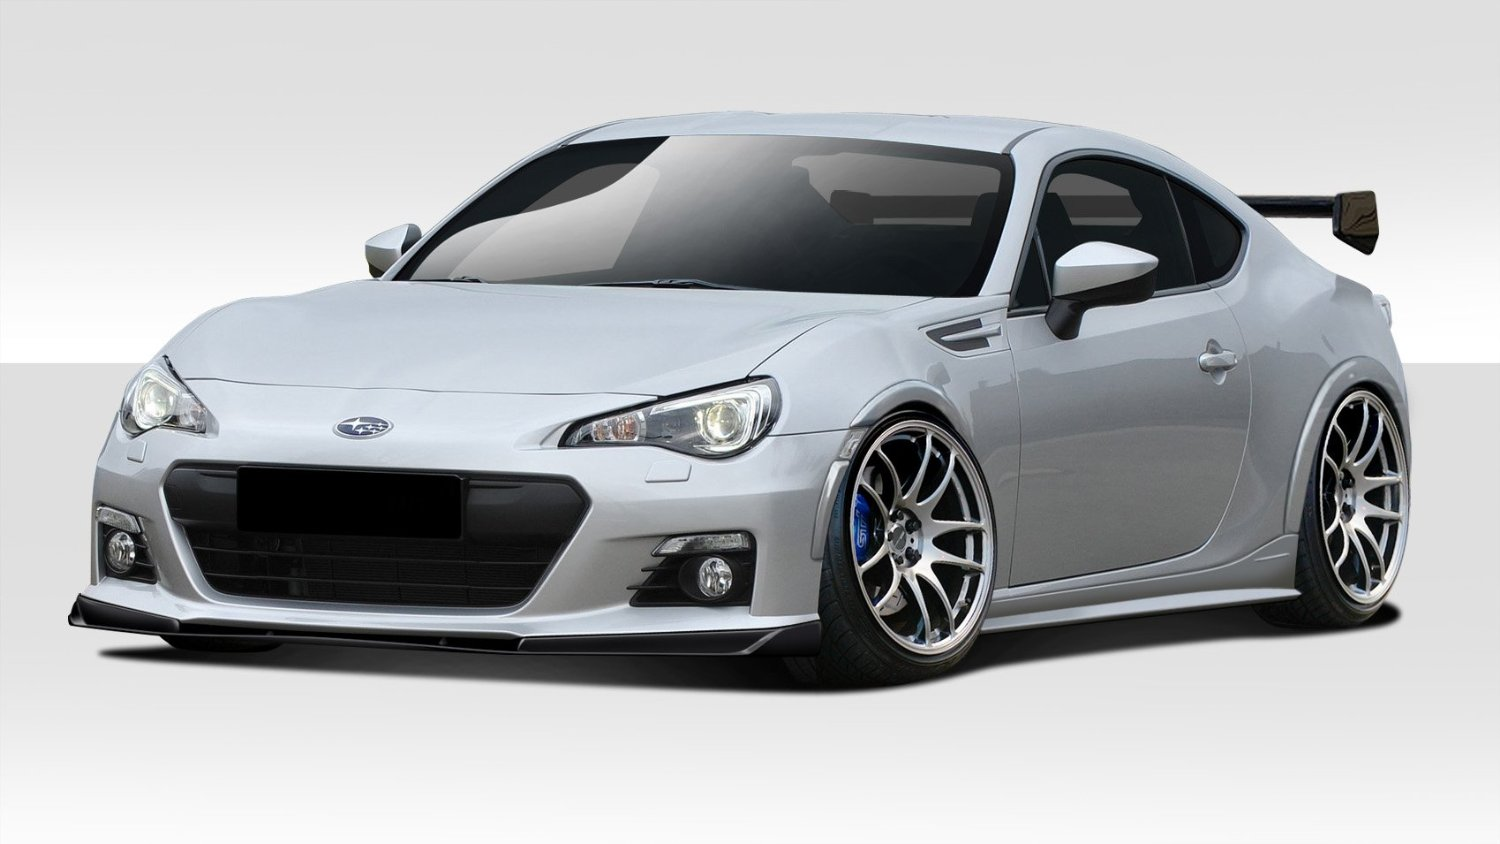 2013-2016 Subaru BRZ Duraflex Zeus Body Kit - 16 Piece - Includes Zeus Front Lip Under Air Dam Spoiler (109622) Zeus Side Skirt Rocker Panels (109623) Zeus Rear Add Ons (109624) Zeus Wing Trunk Lid Spoiler (109625) Zeus Fender Flares (112110)